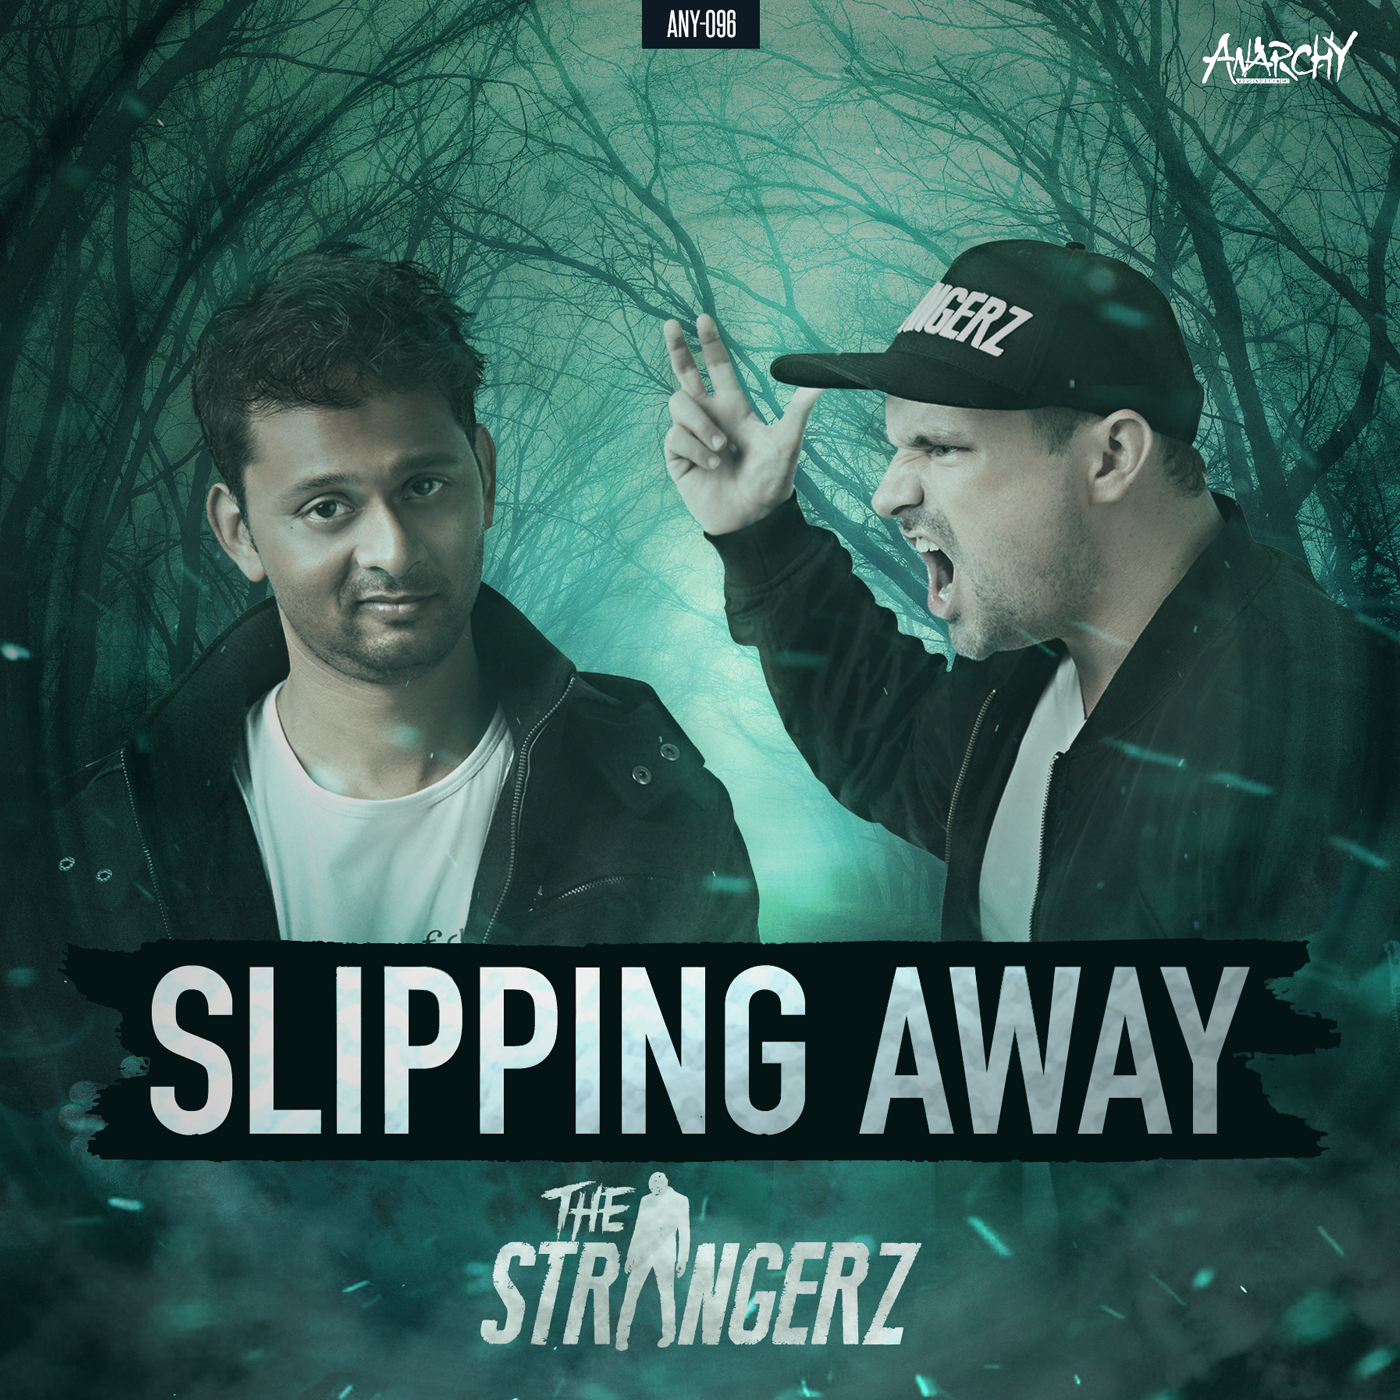 The Strangerz - Slipping Away [ANARCHY] ANY096